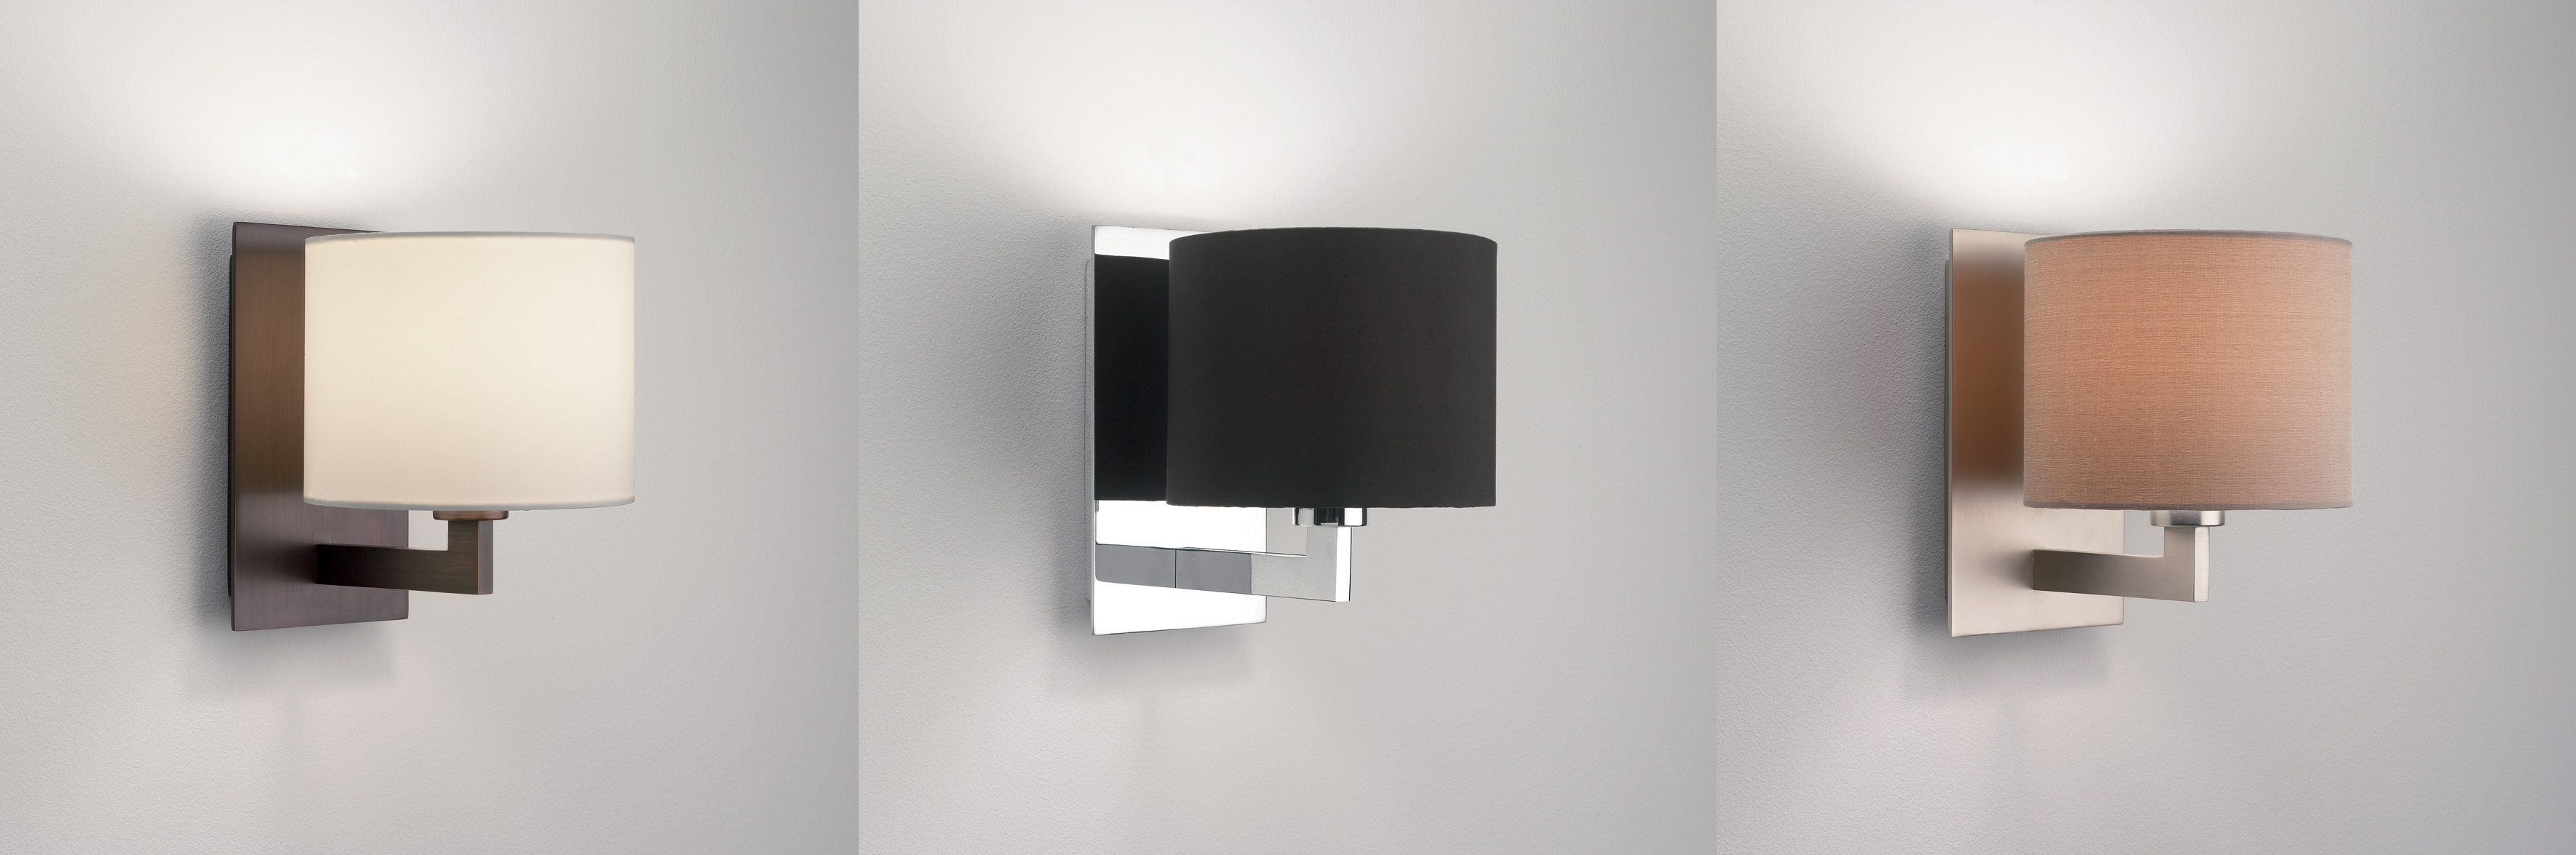 Astro olan lampshade wall light 60w e14 chrome nickel bronze shade sentinel astro olan lampshade wall light 60w e14 chrome nickel bronze shade options aloadofball Image collections